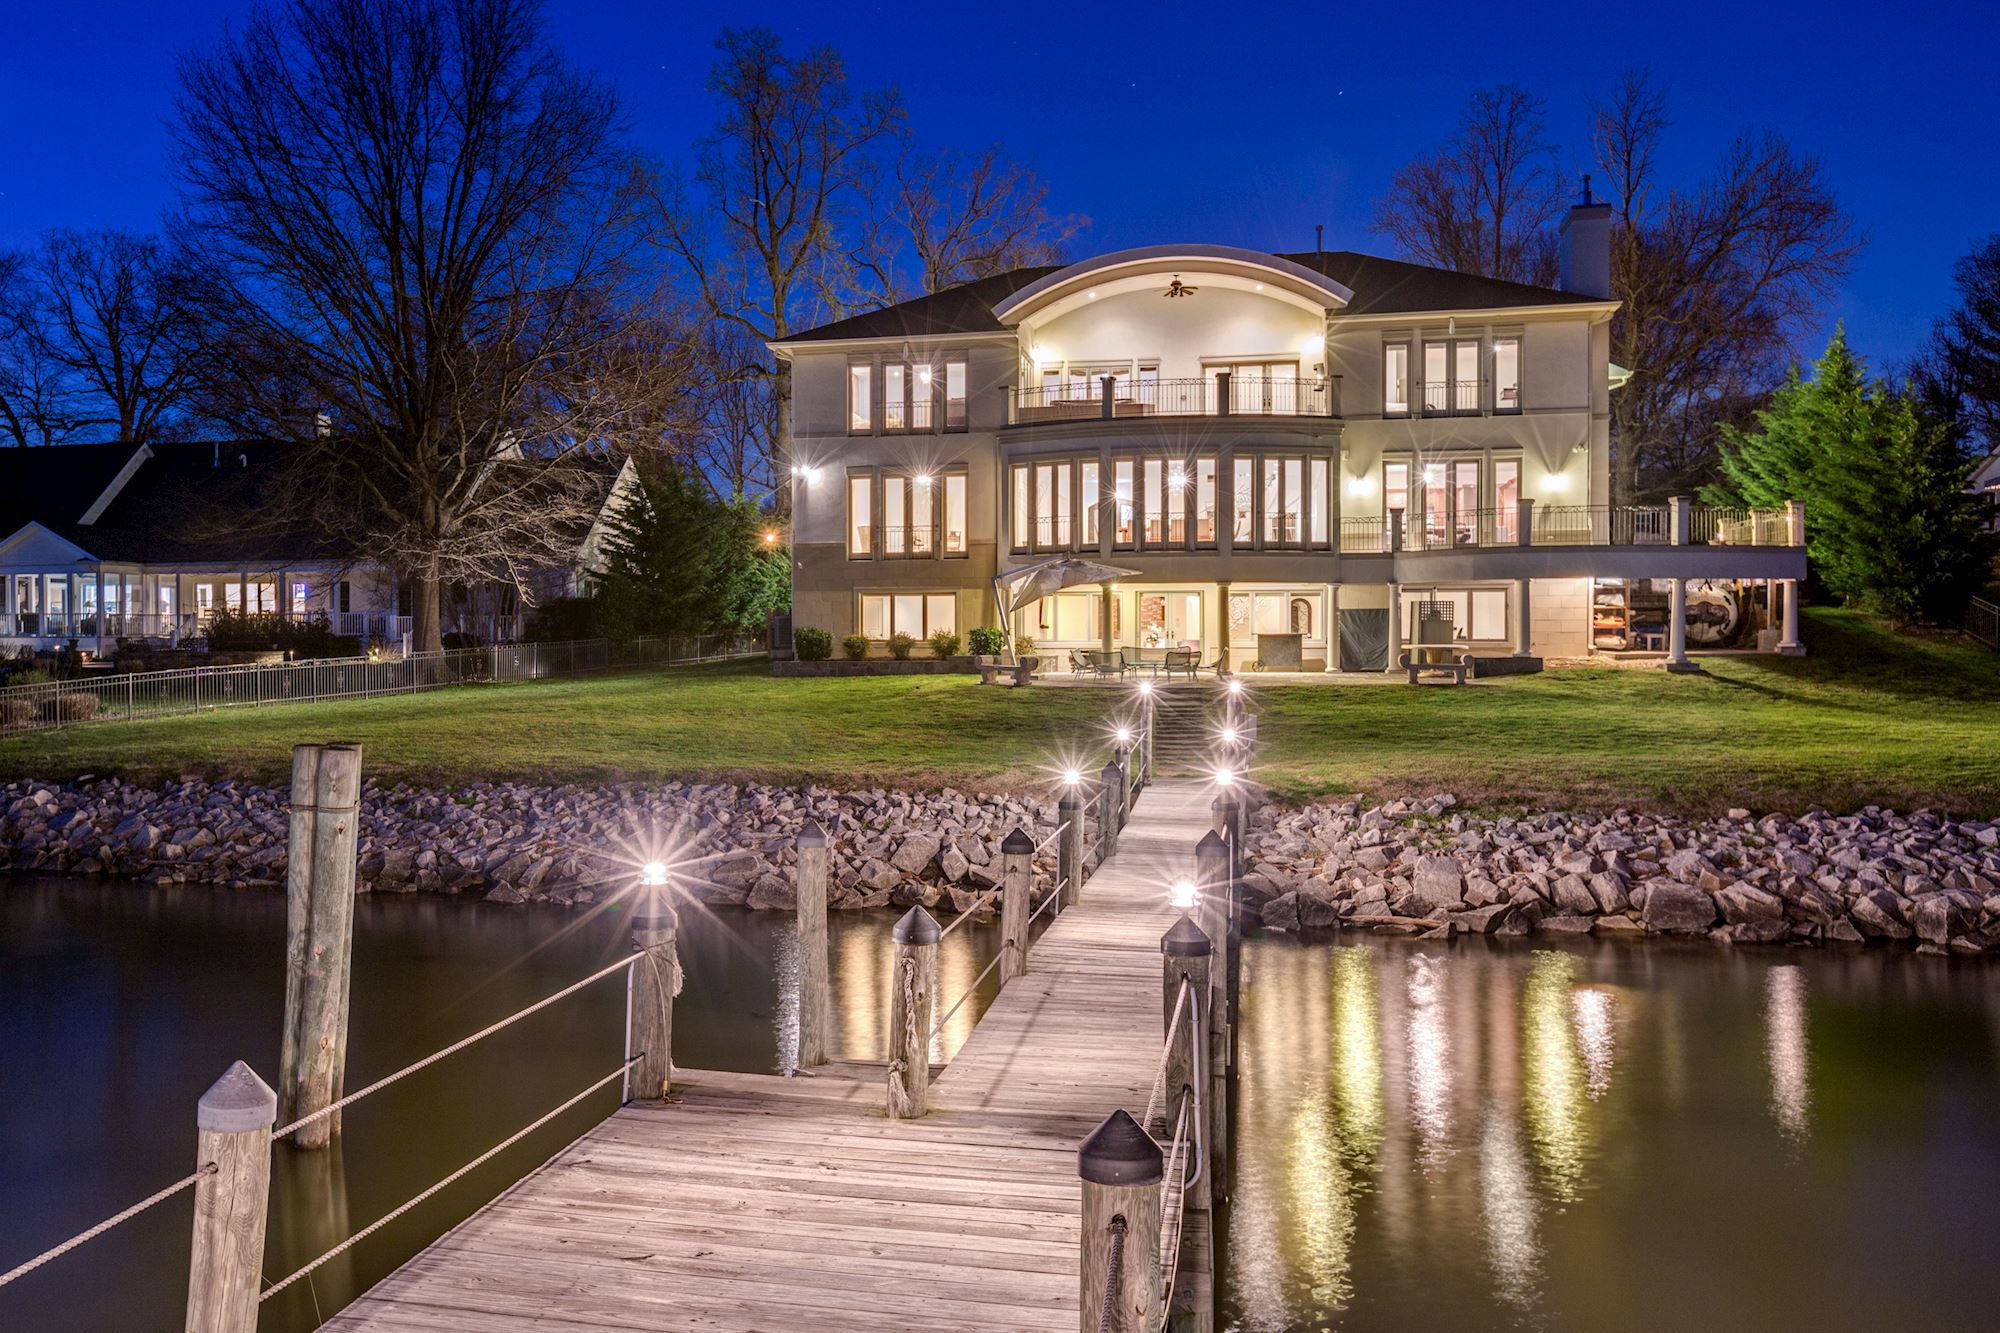 This palatial residence in the historic Washington, D.C., suburb of Alexandria offers sophisticated entertaining options in the presence of the Potomac River.